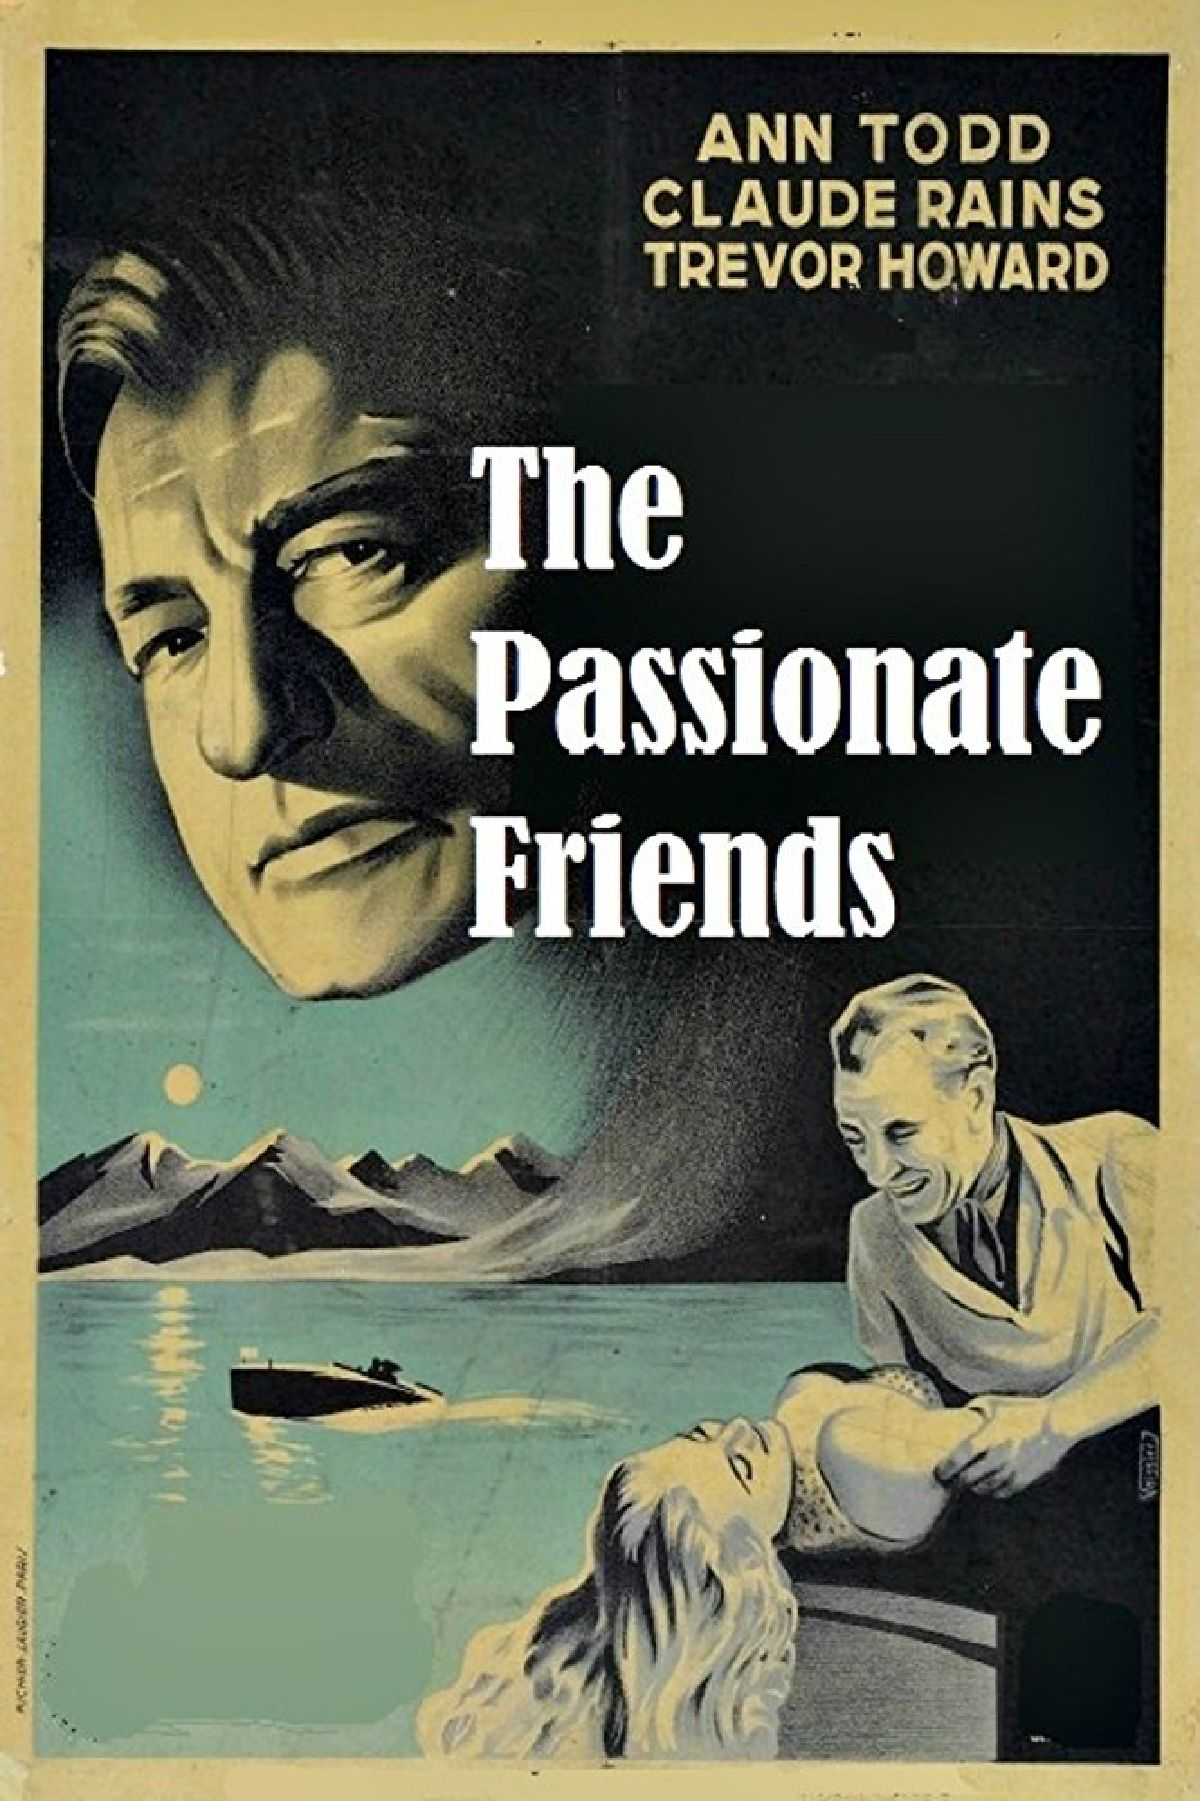 'The Passionate Friends' movie poster